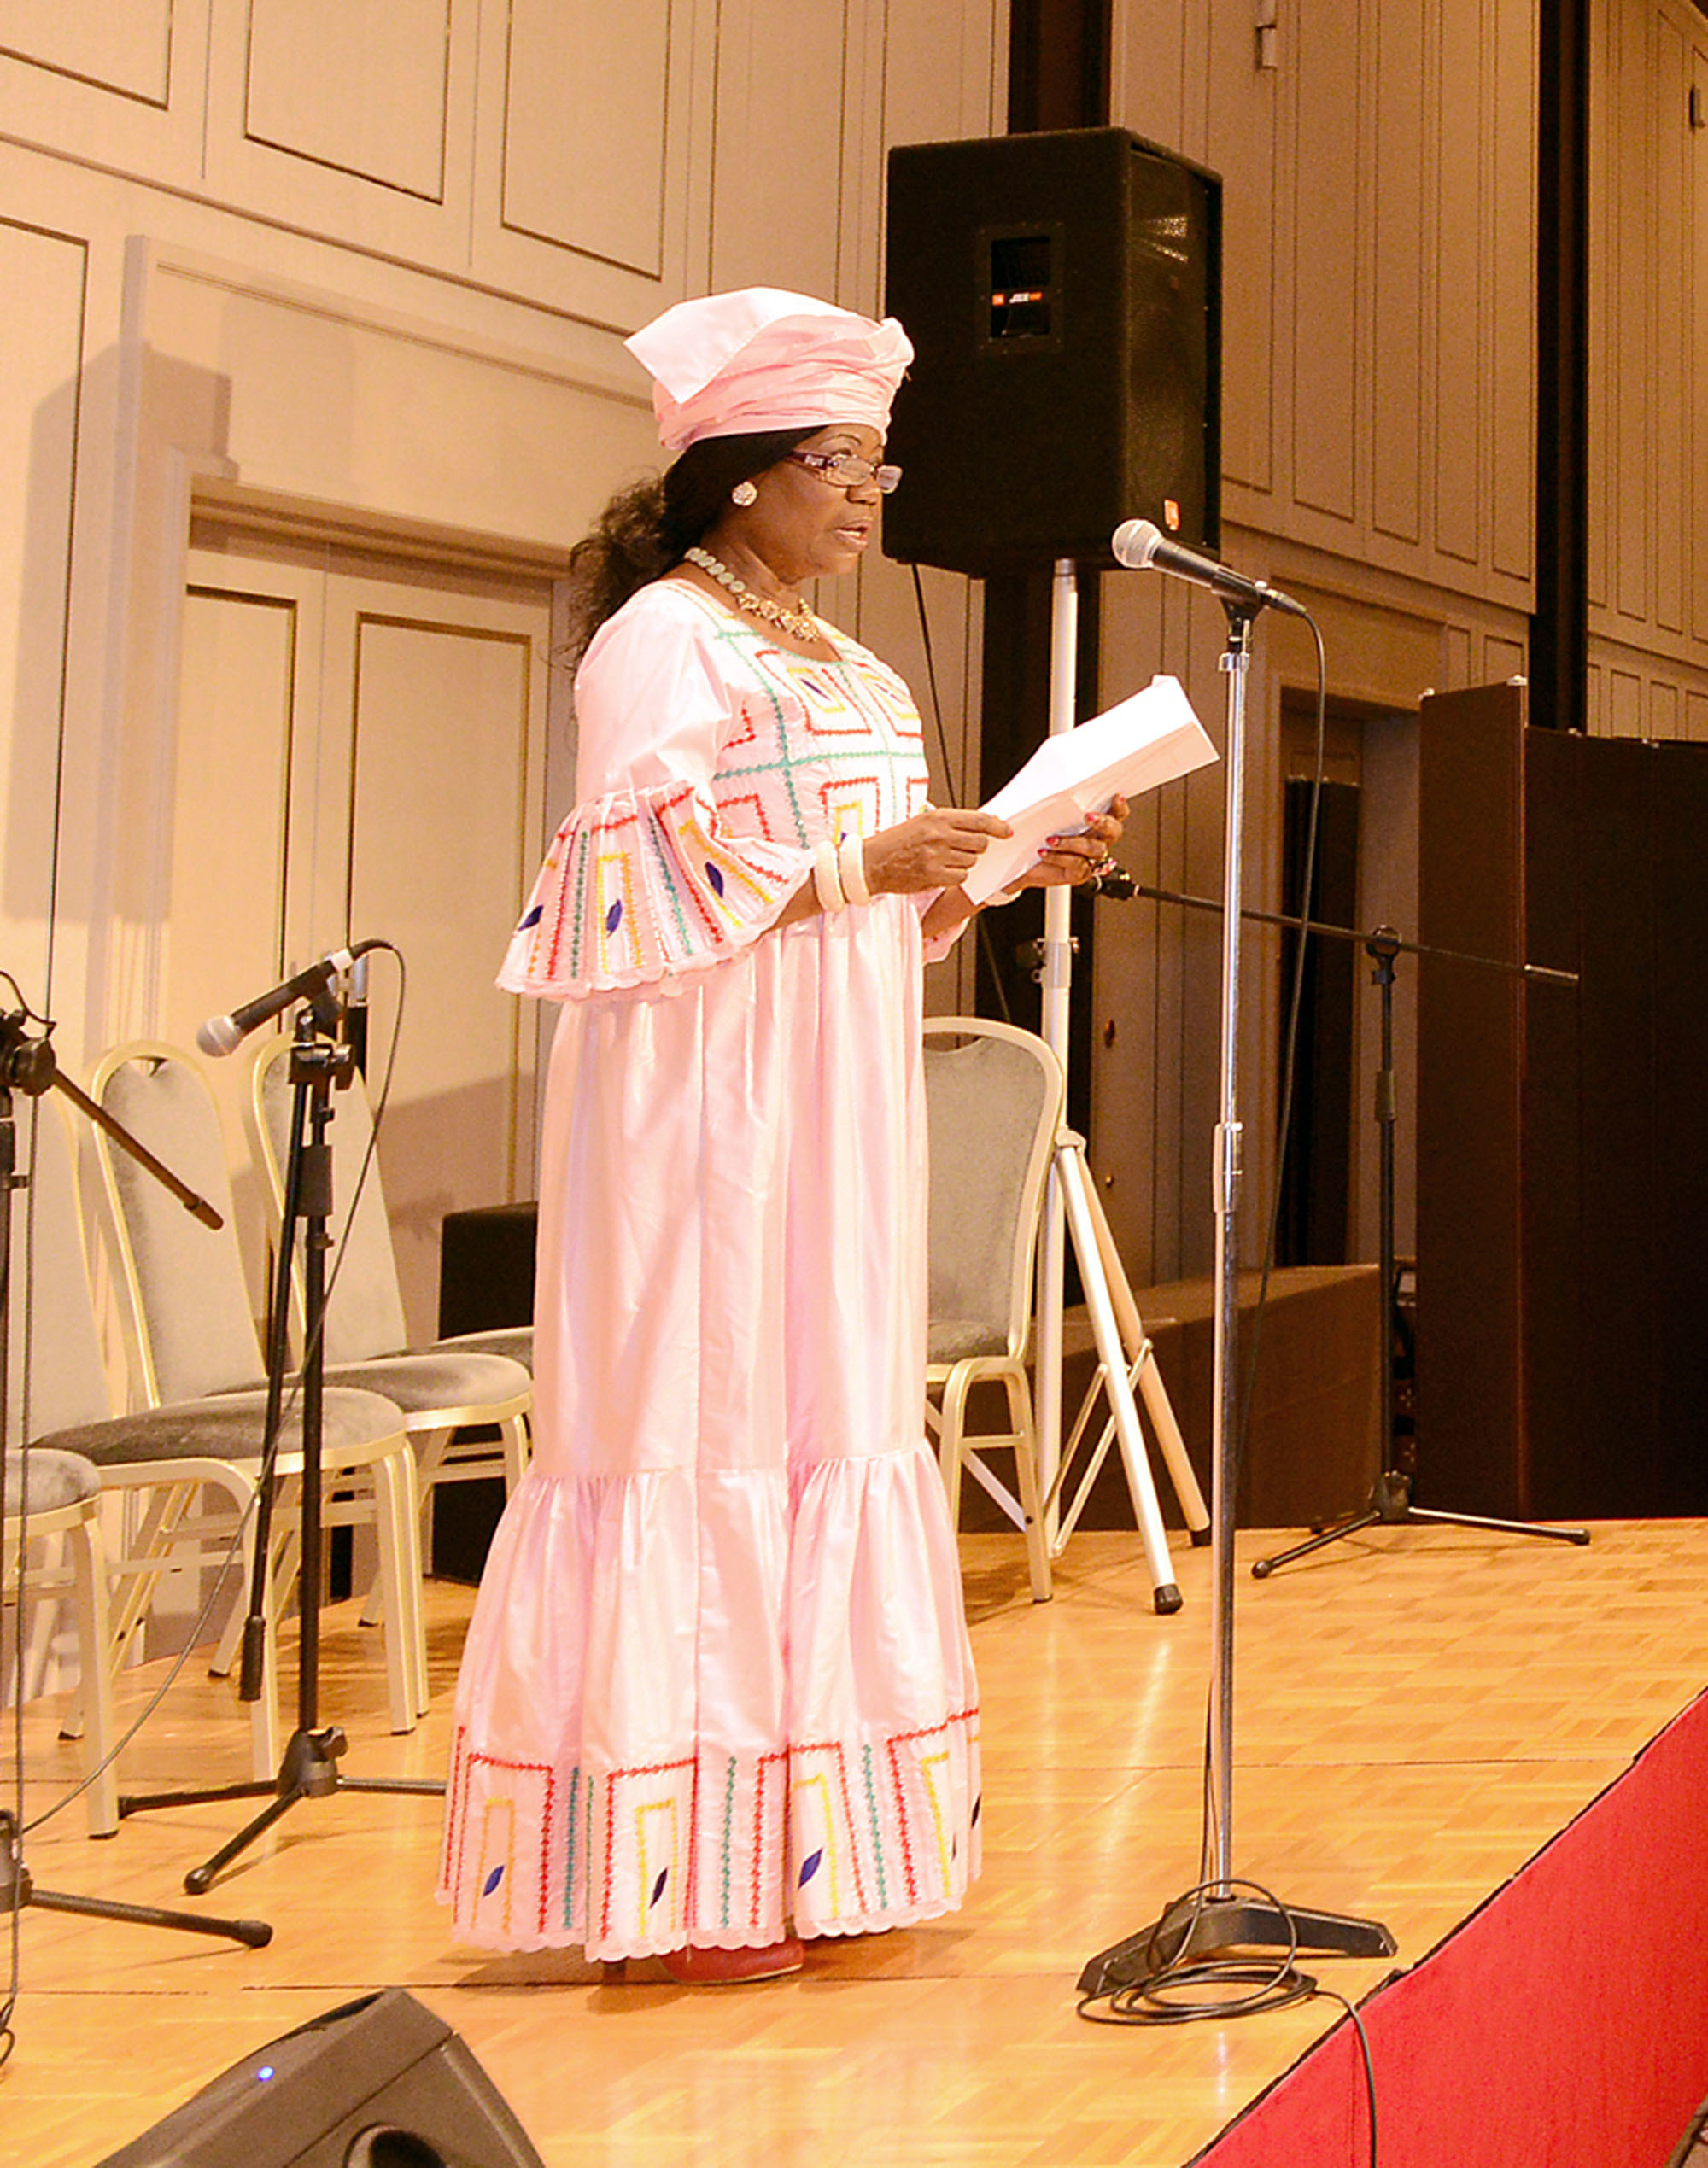 The President of the Association of Wives of African Ambassadors in Japan (AWAAJ), Alphonsine B. Ndzengue, wife of the ambassador of Cameroon, speaks at the association's charity dinner and dance, with proceeds this year going to Fukushima Support Net Sado and other charity organizations in Japan and Africa. | AWAAJ